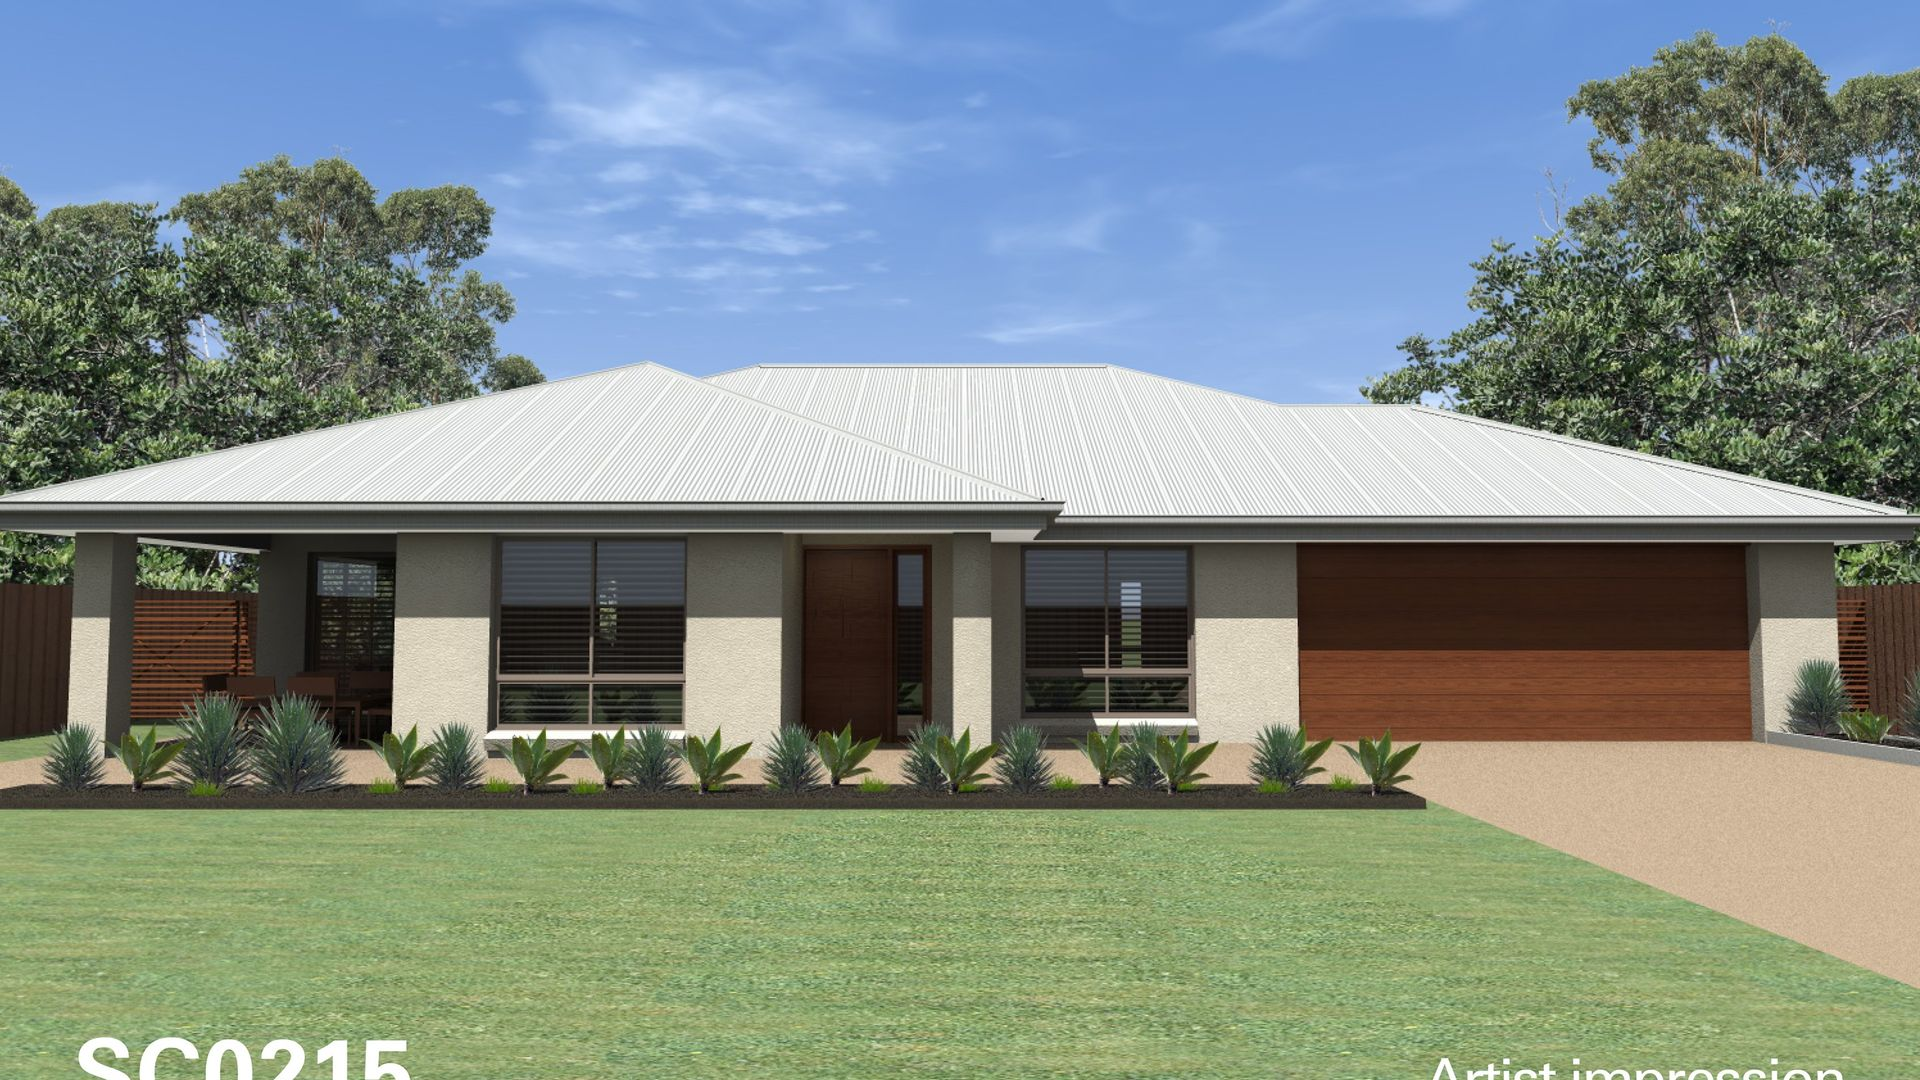 Lot 1 Boonah-Fassifern Road, Boonah QLD 4310, Image 2